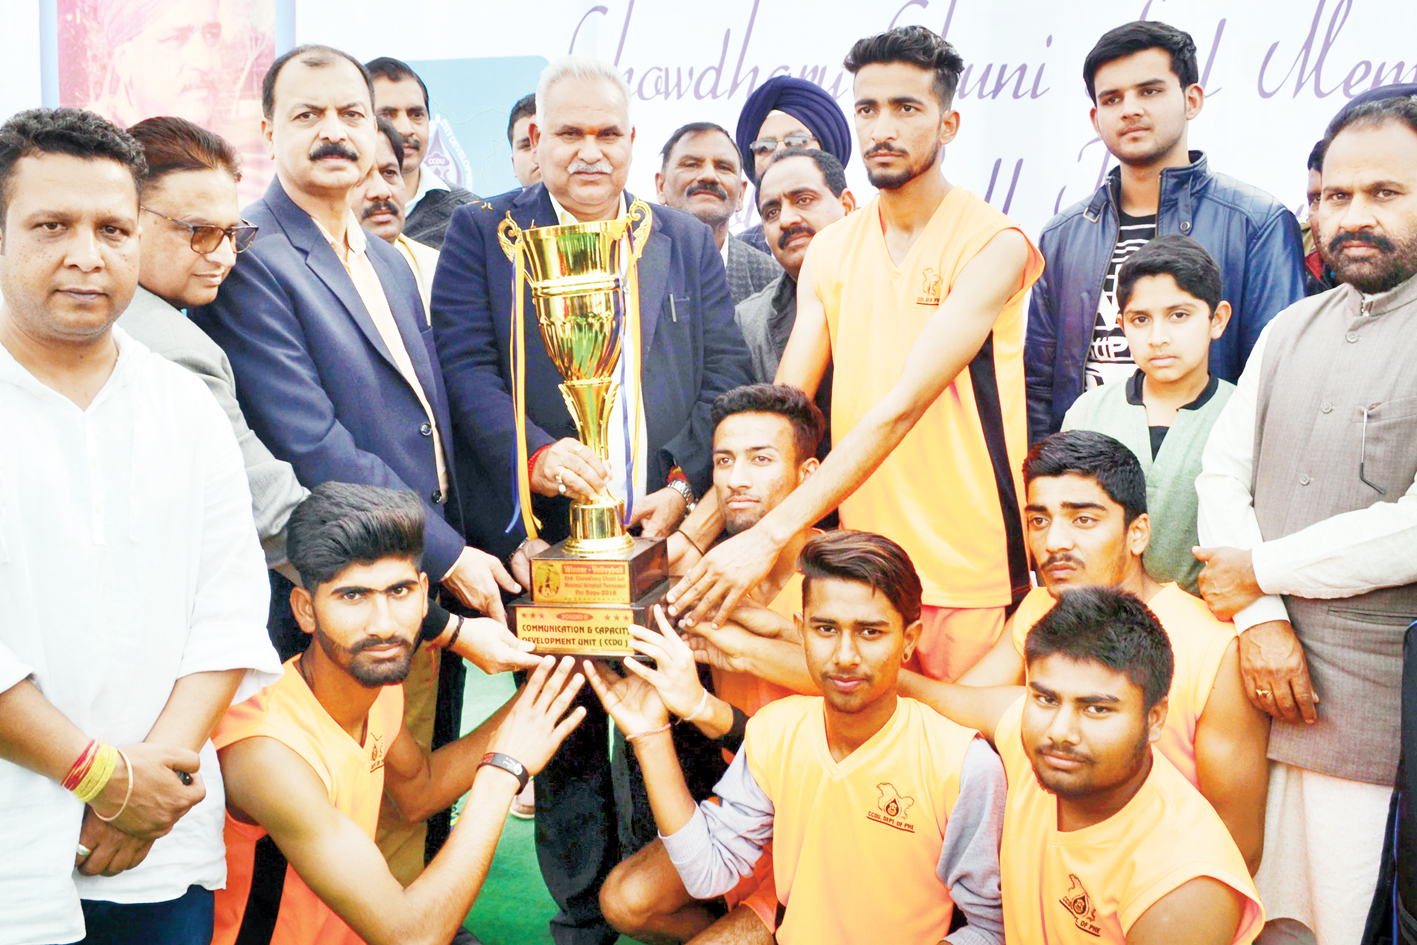 Winners of Volleyball Tournament holding trophy while posing for a group photograph along with Minister for PHE, Sham Choudhary in Jammu.